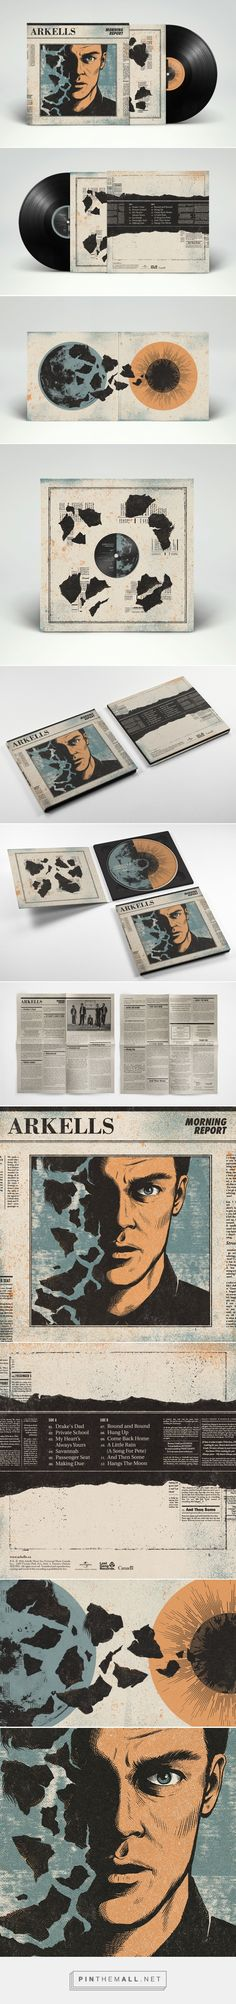 ARKELLS: Morning Report LP on Behance - created on 2016-08-27 00:15:04